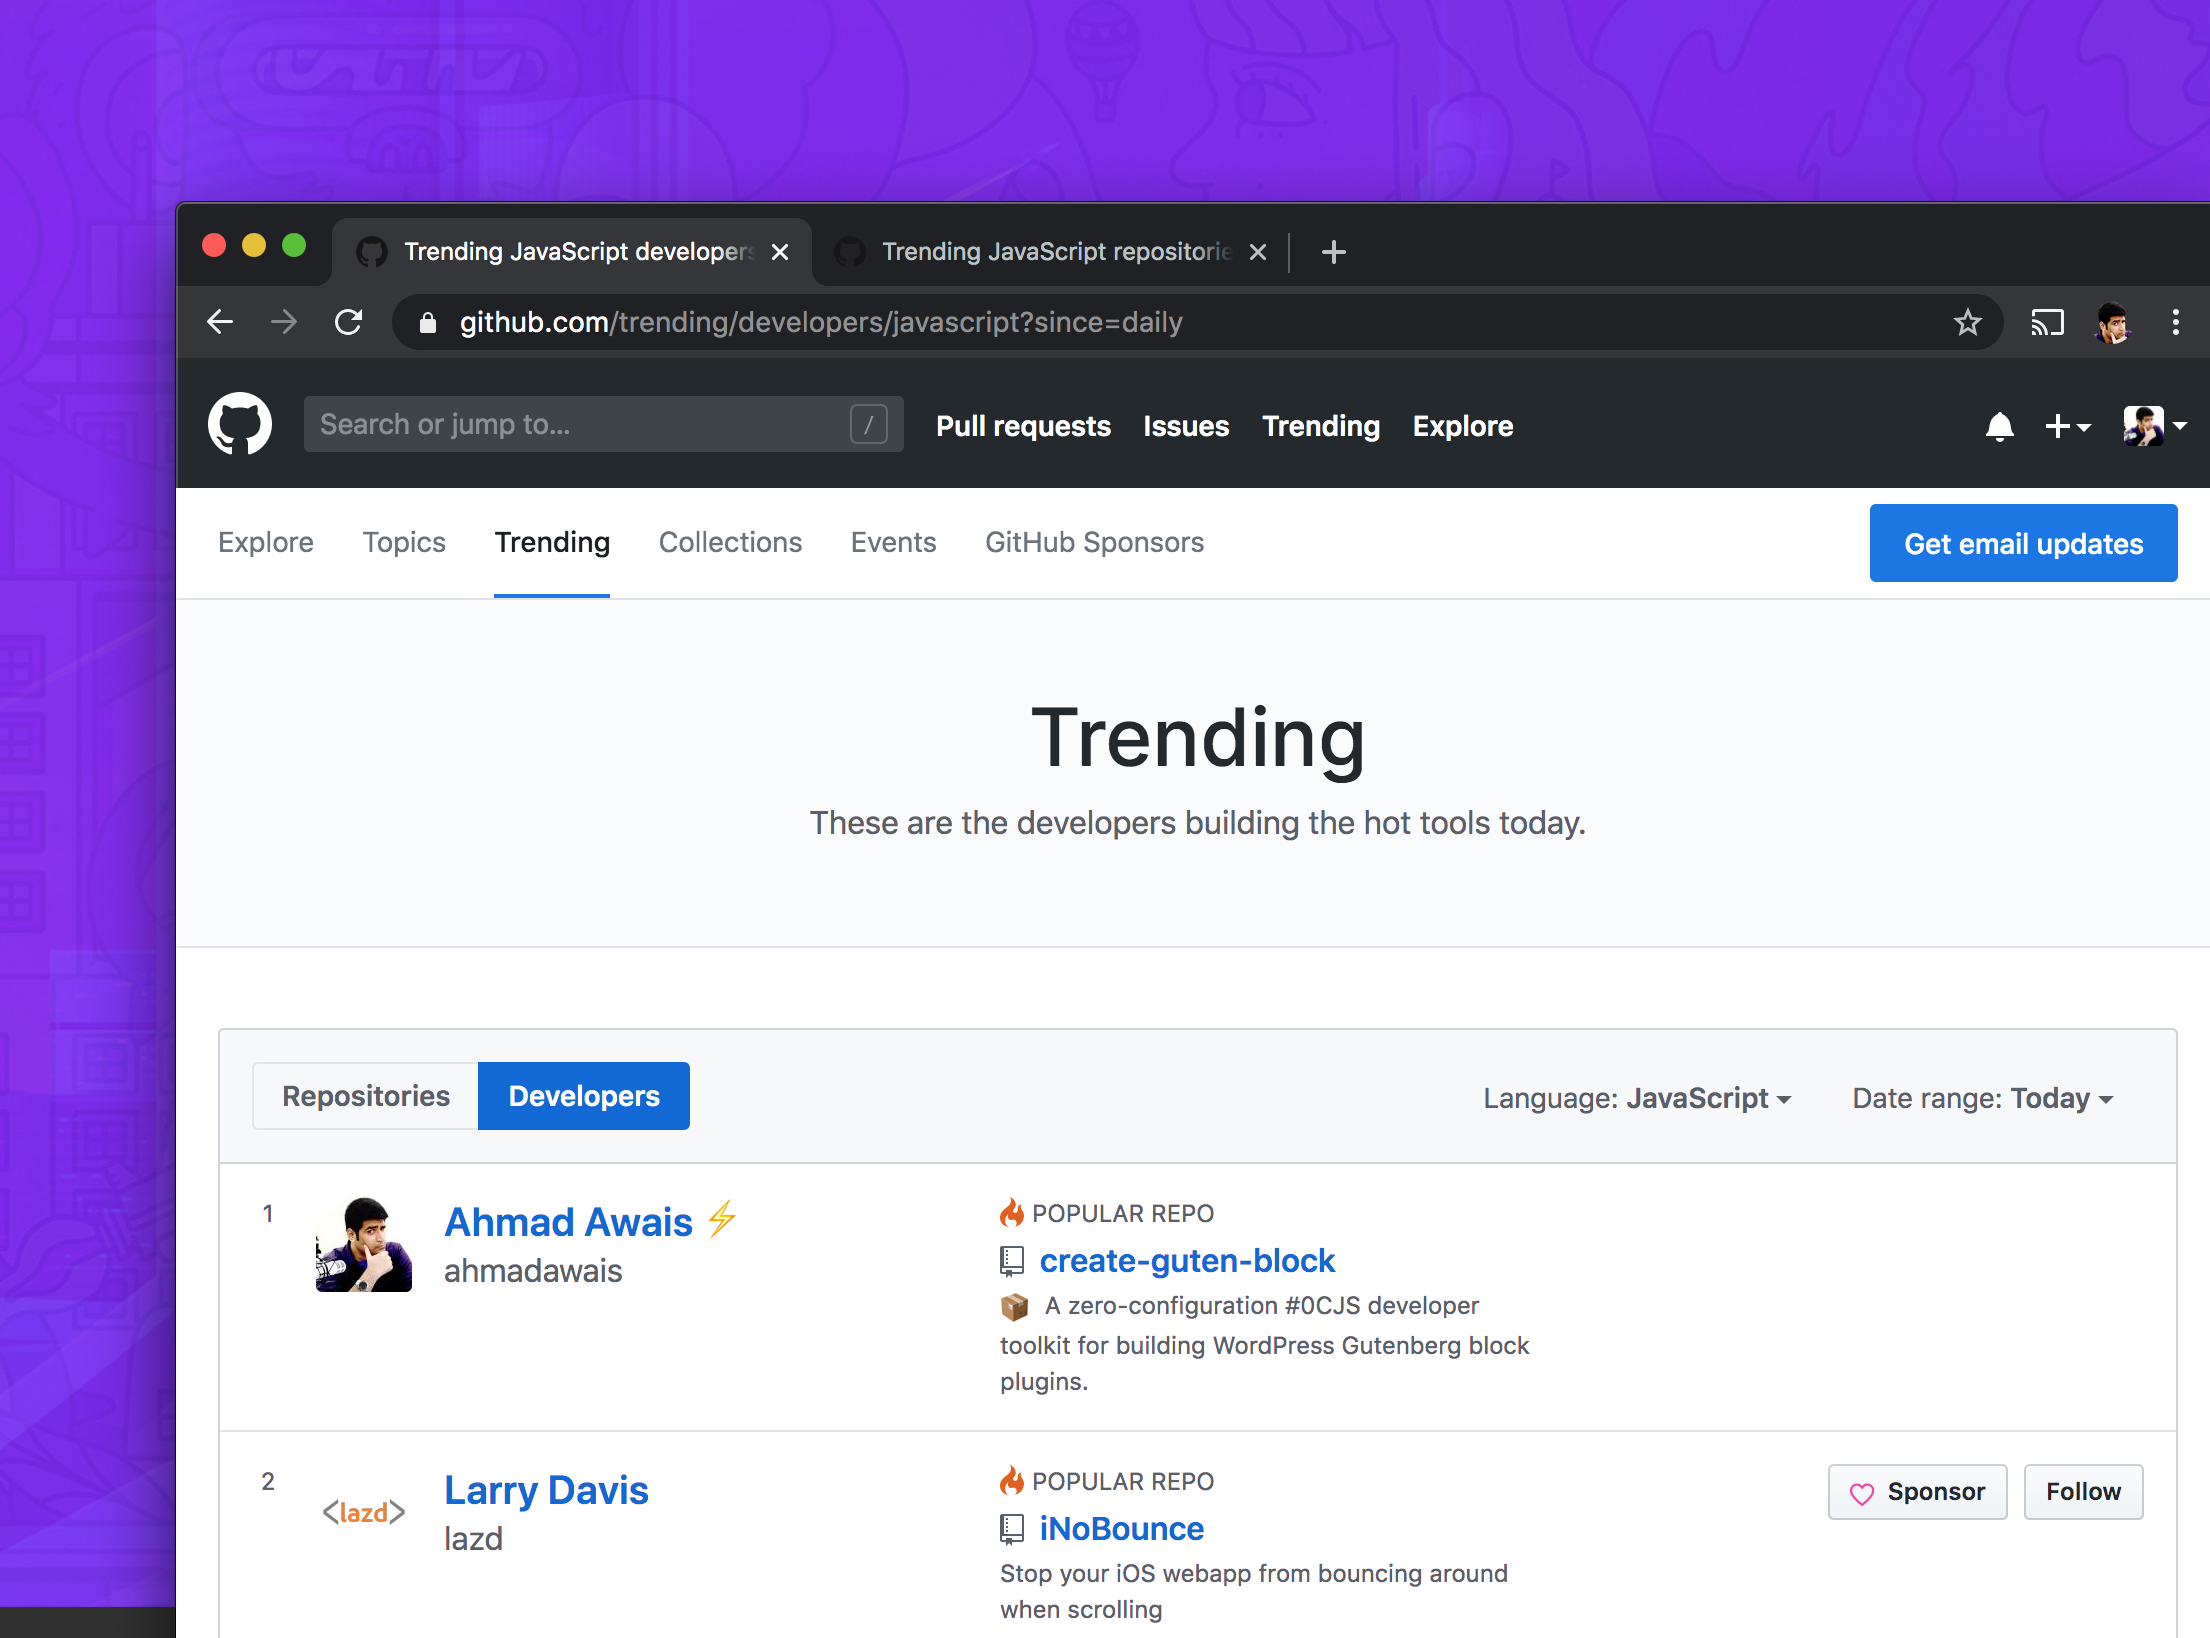 Ahmad Awais GitHub Trending Developer JavaScript